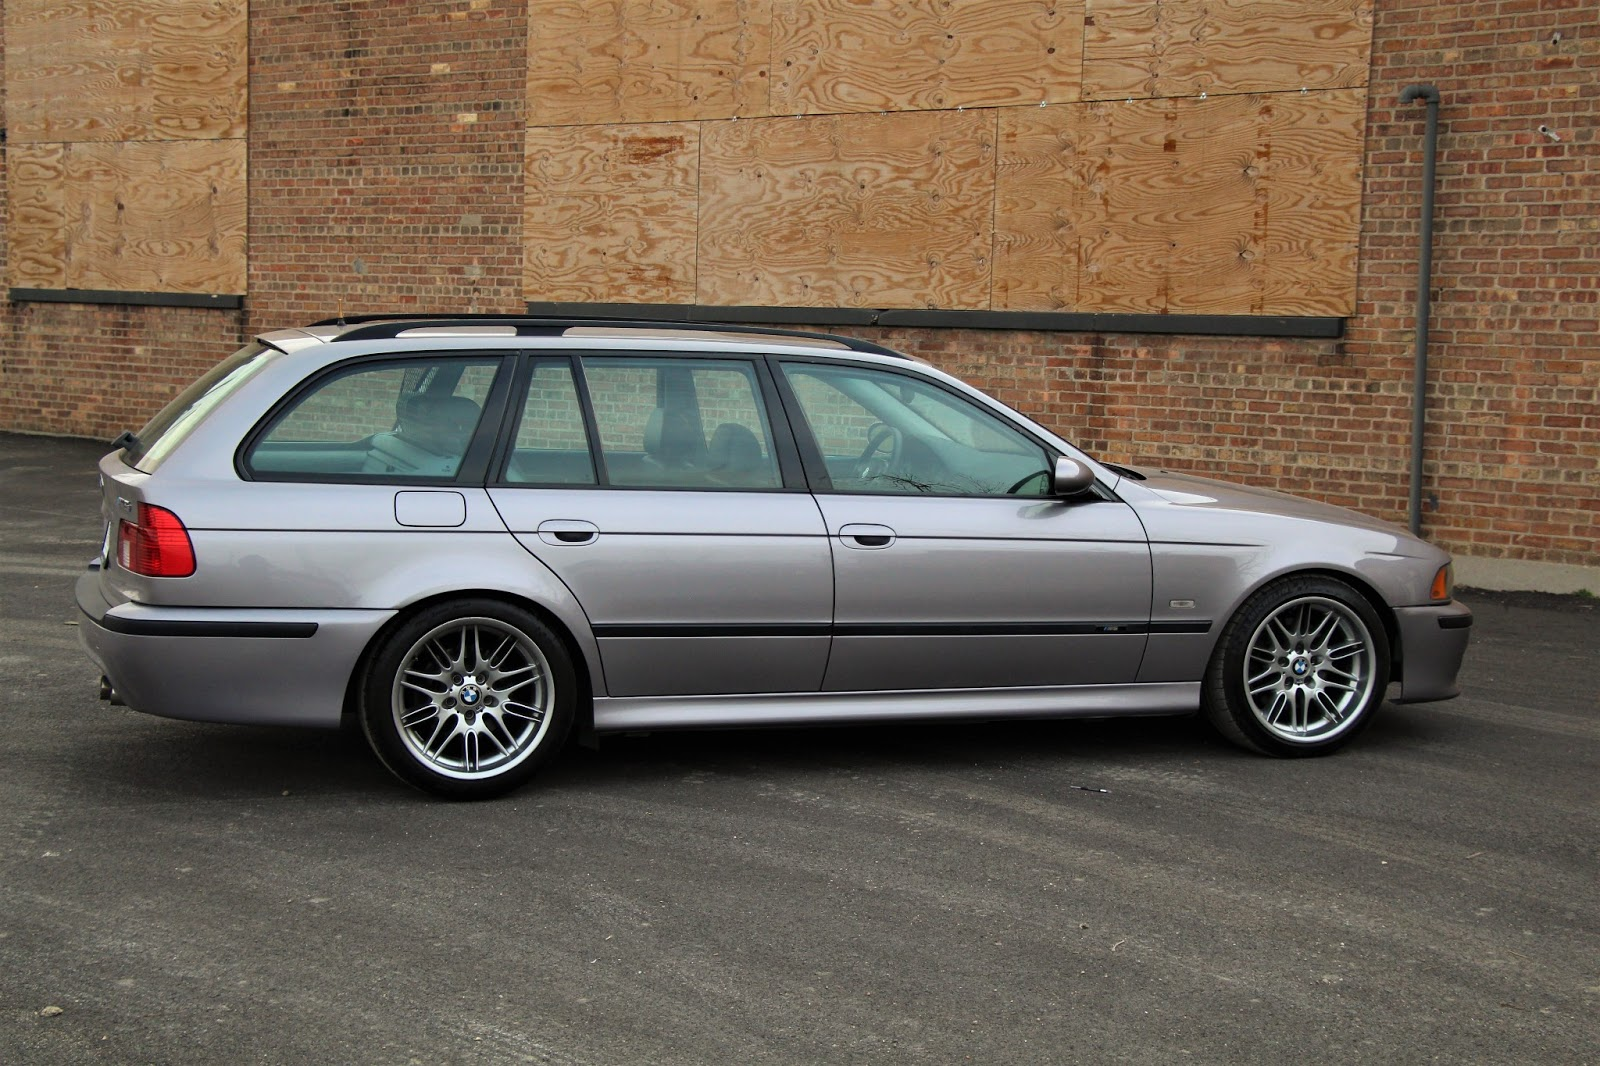 2001 Bmw 540i Wagon For Sale Thxsiempre